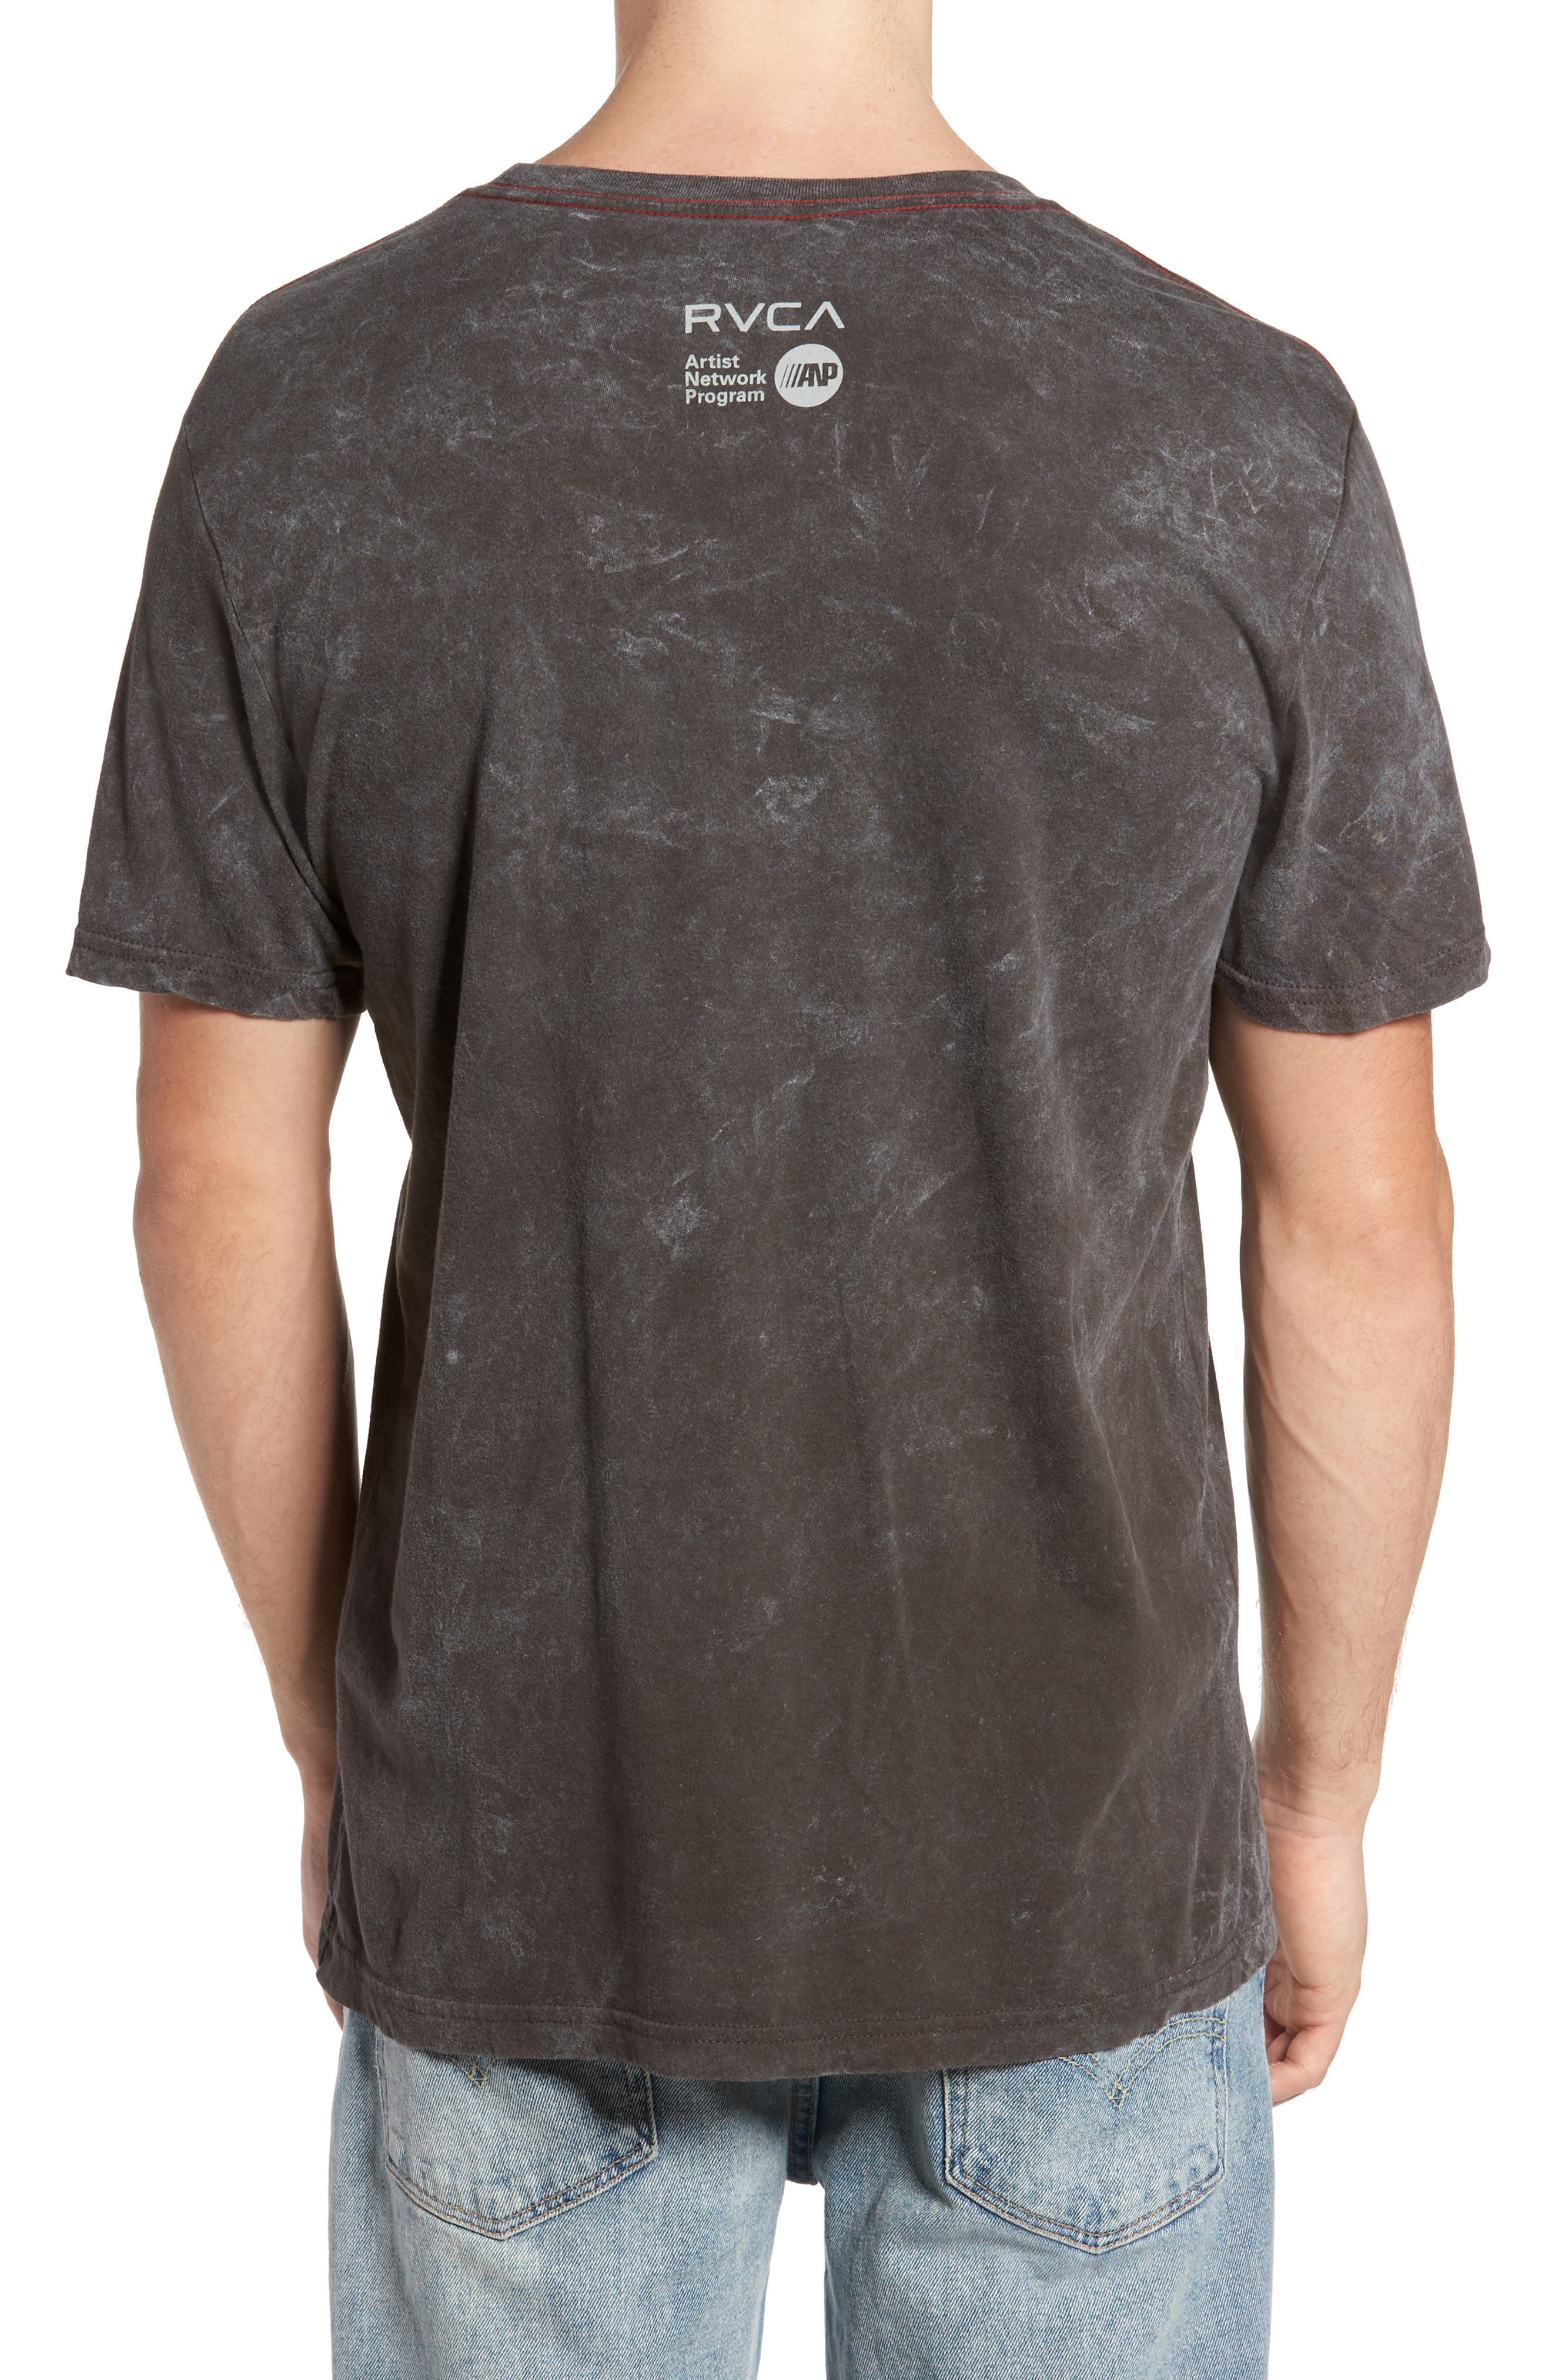 Trail to Nowhere Graphic T-Shirt,                             Alternate thumbnail 2, color,                             008